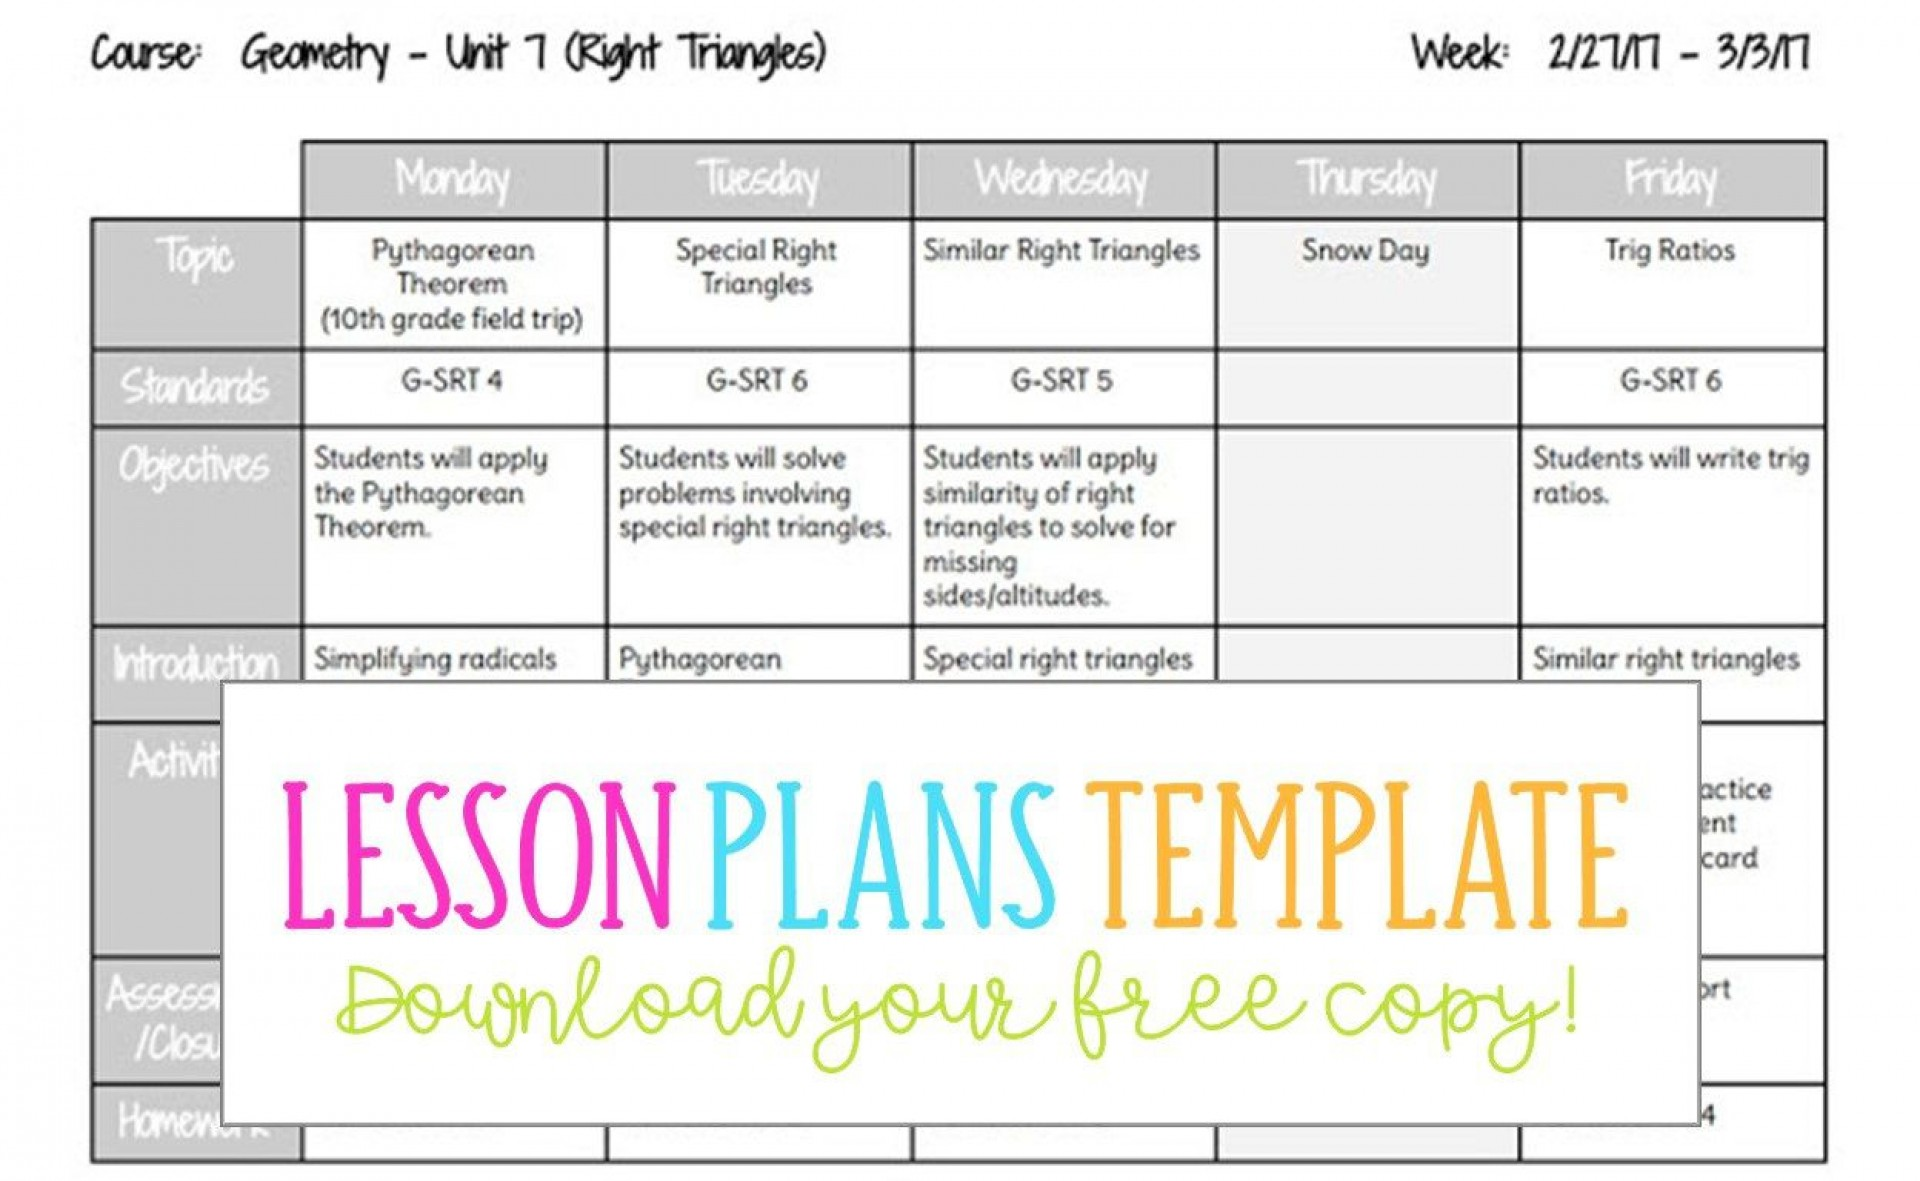 004 Imposing Weekly Lesson Plan Template Google Doc High Def  Docs 5e Simple1920